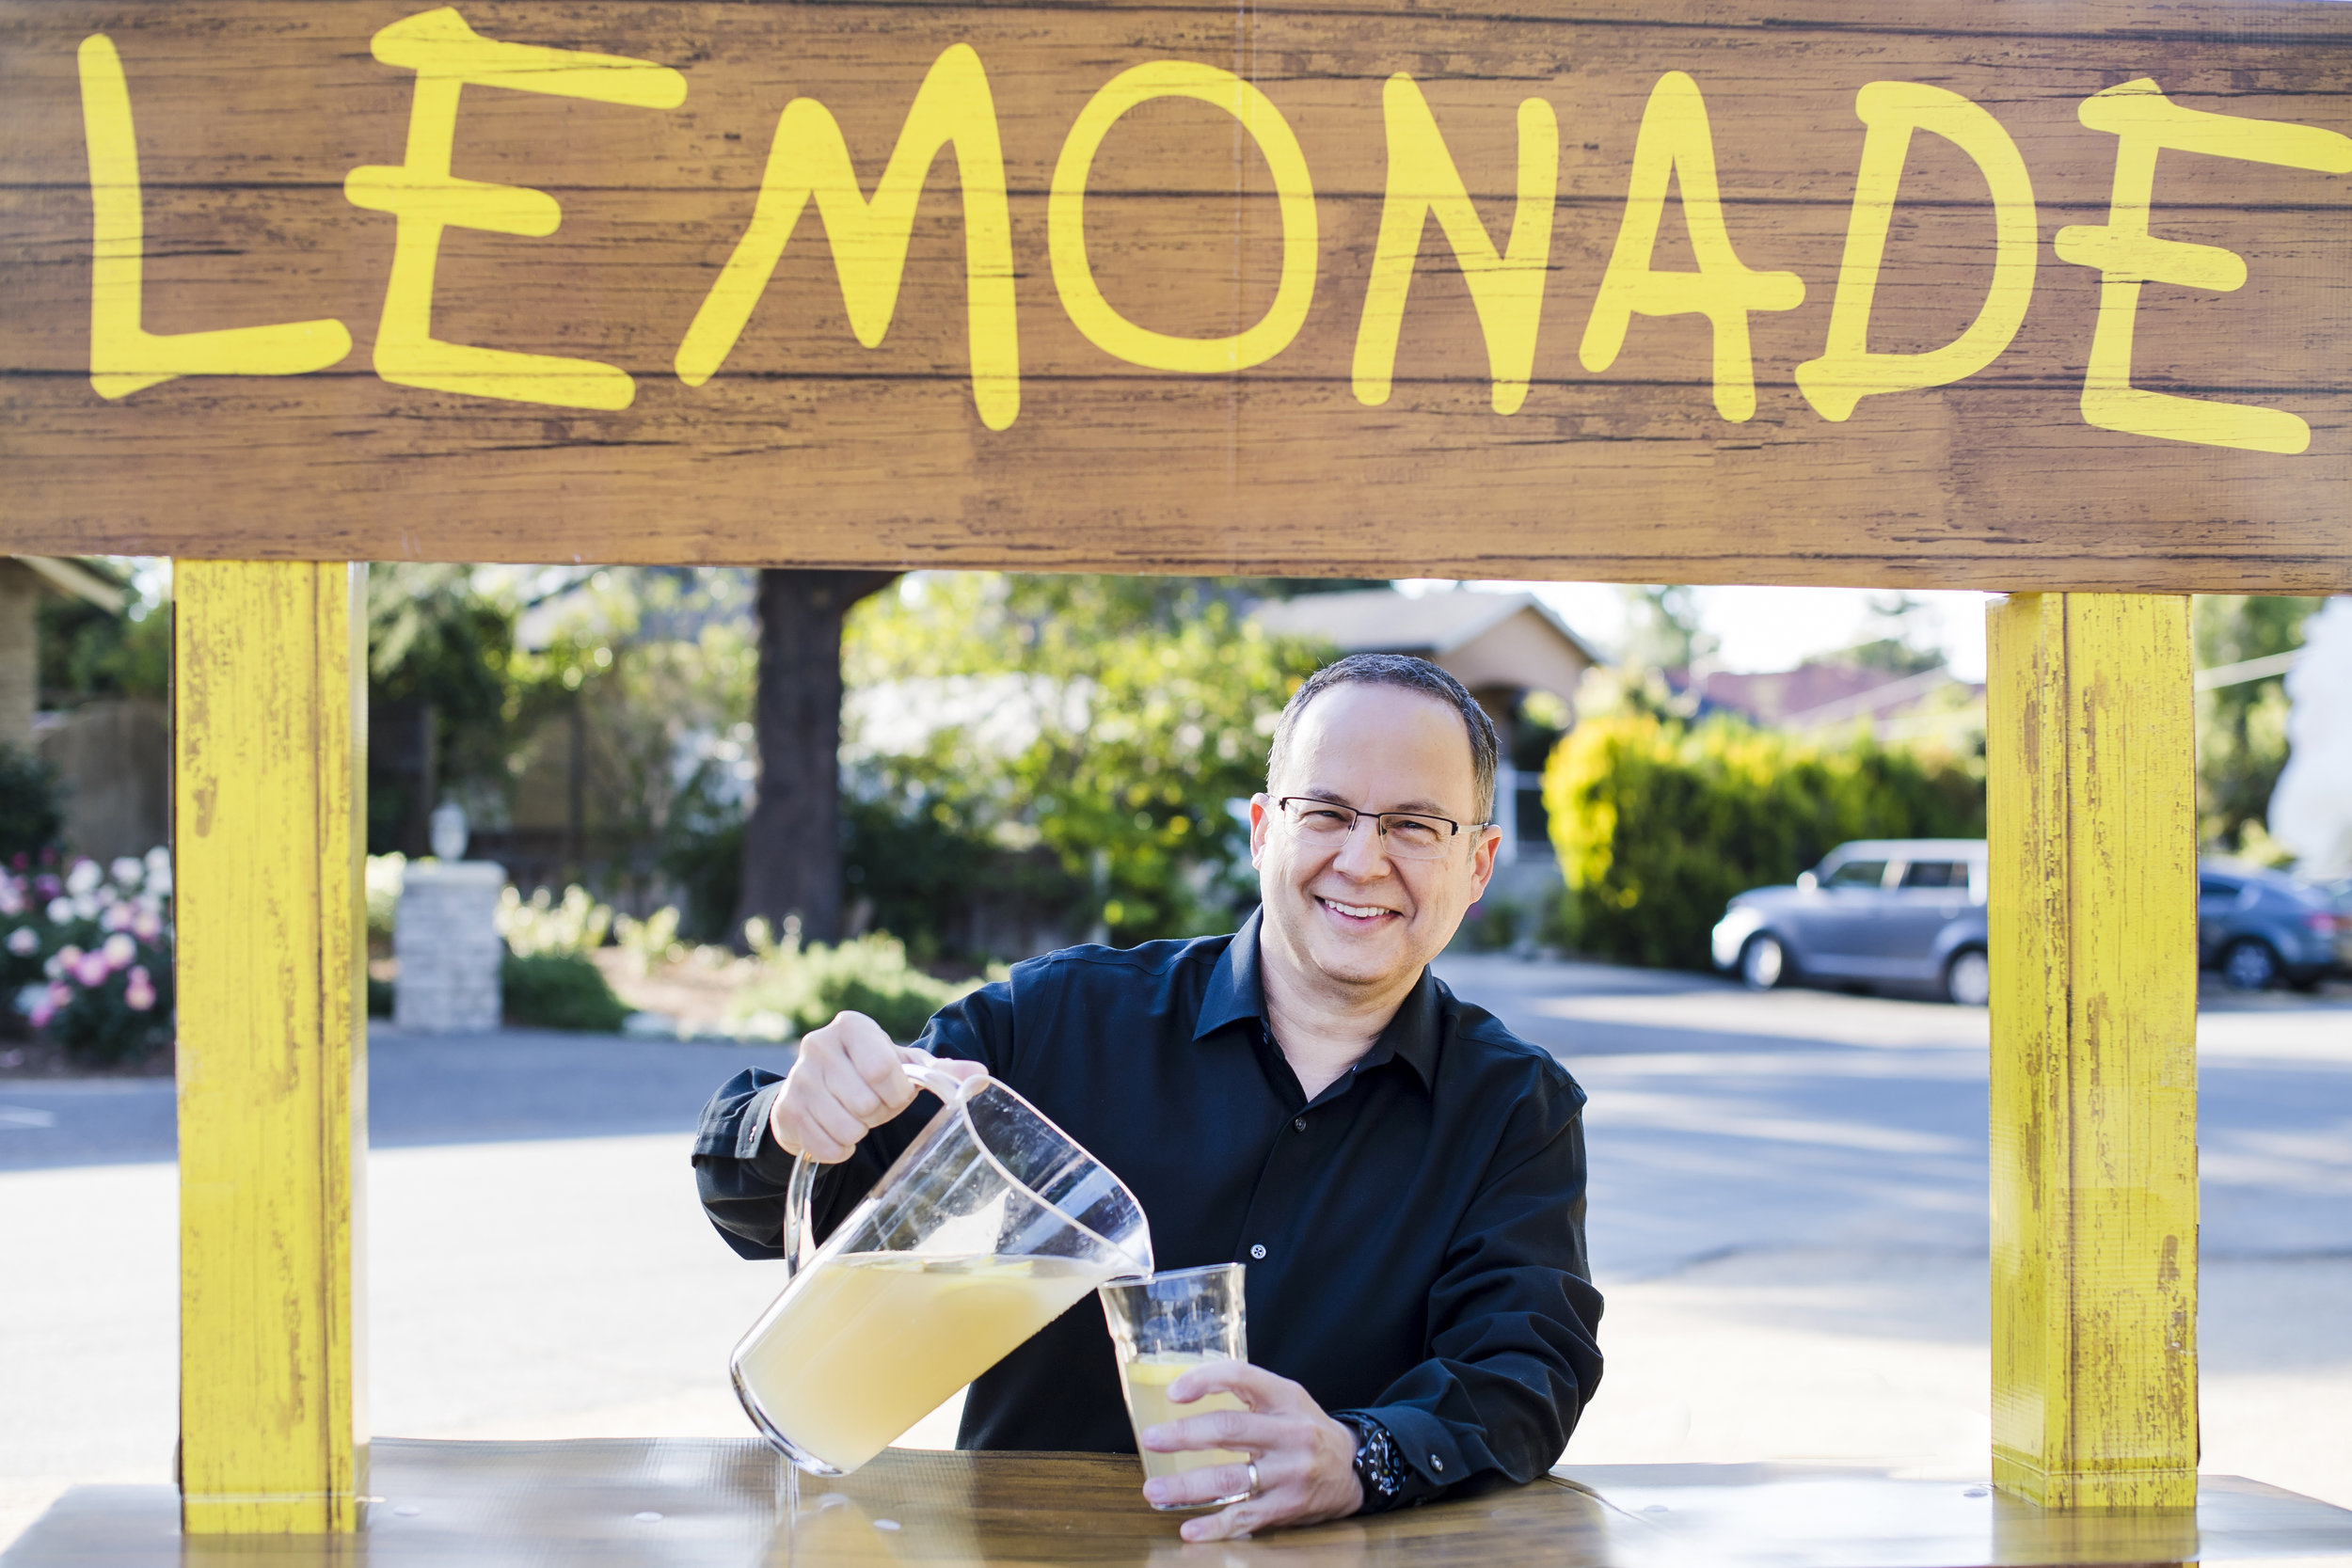 Headshot Lemonade Stand Original.jpg